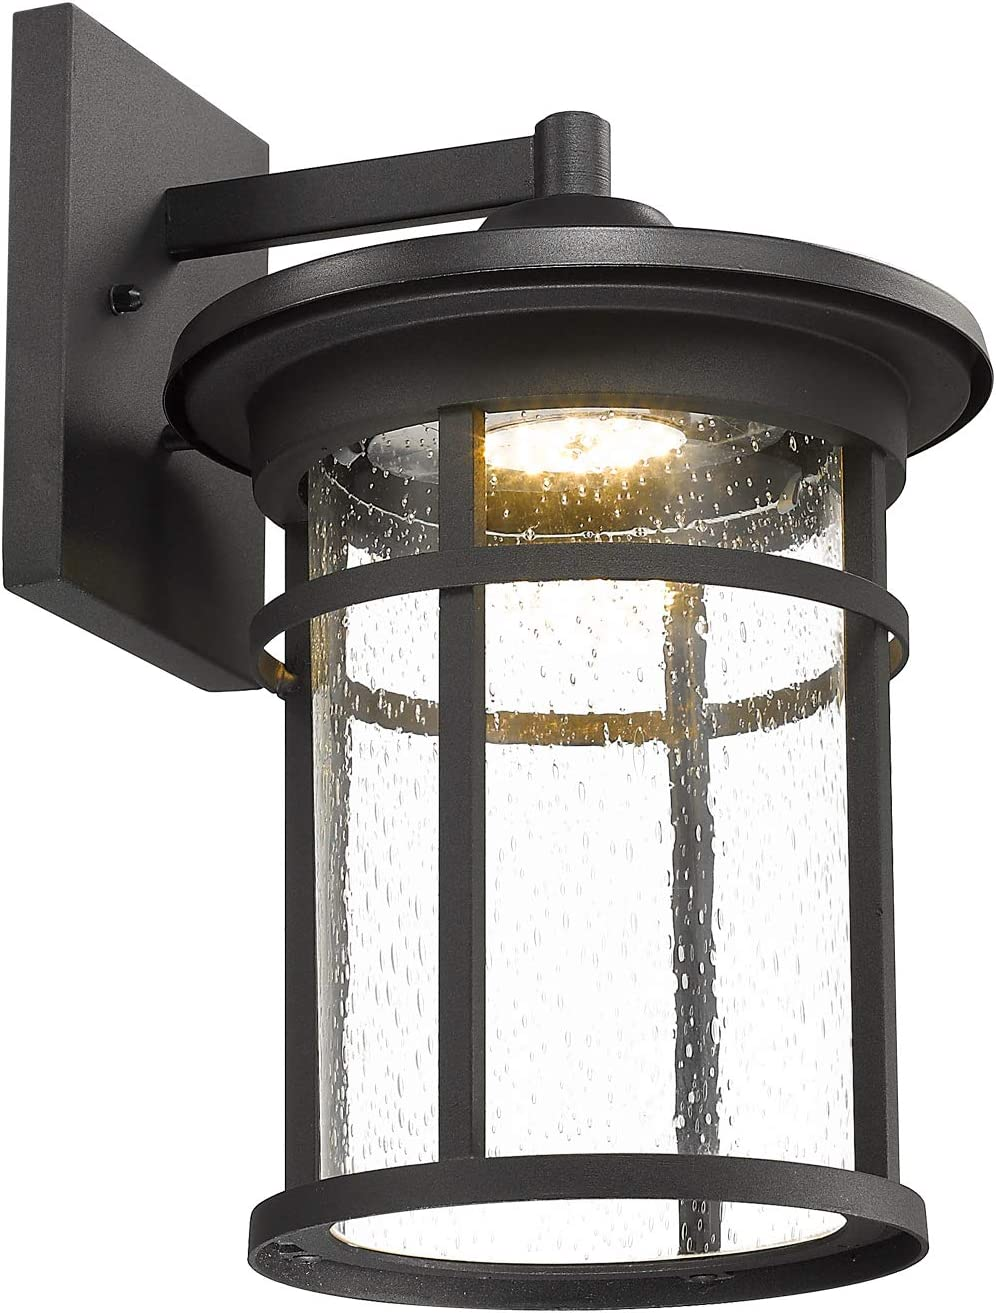 Emliviar Outdoor Wall Lights for House, 14 inch 9W LED Wall Lantern with Seeded Glass in Black Finish, 01A085W-LED BK